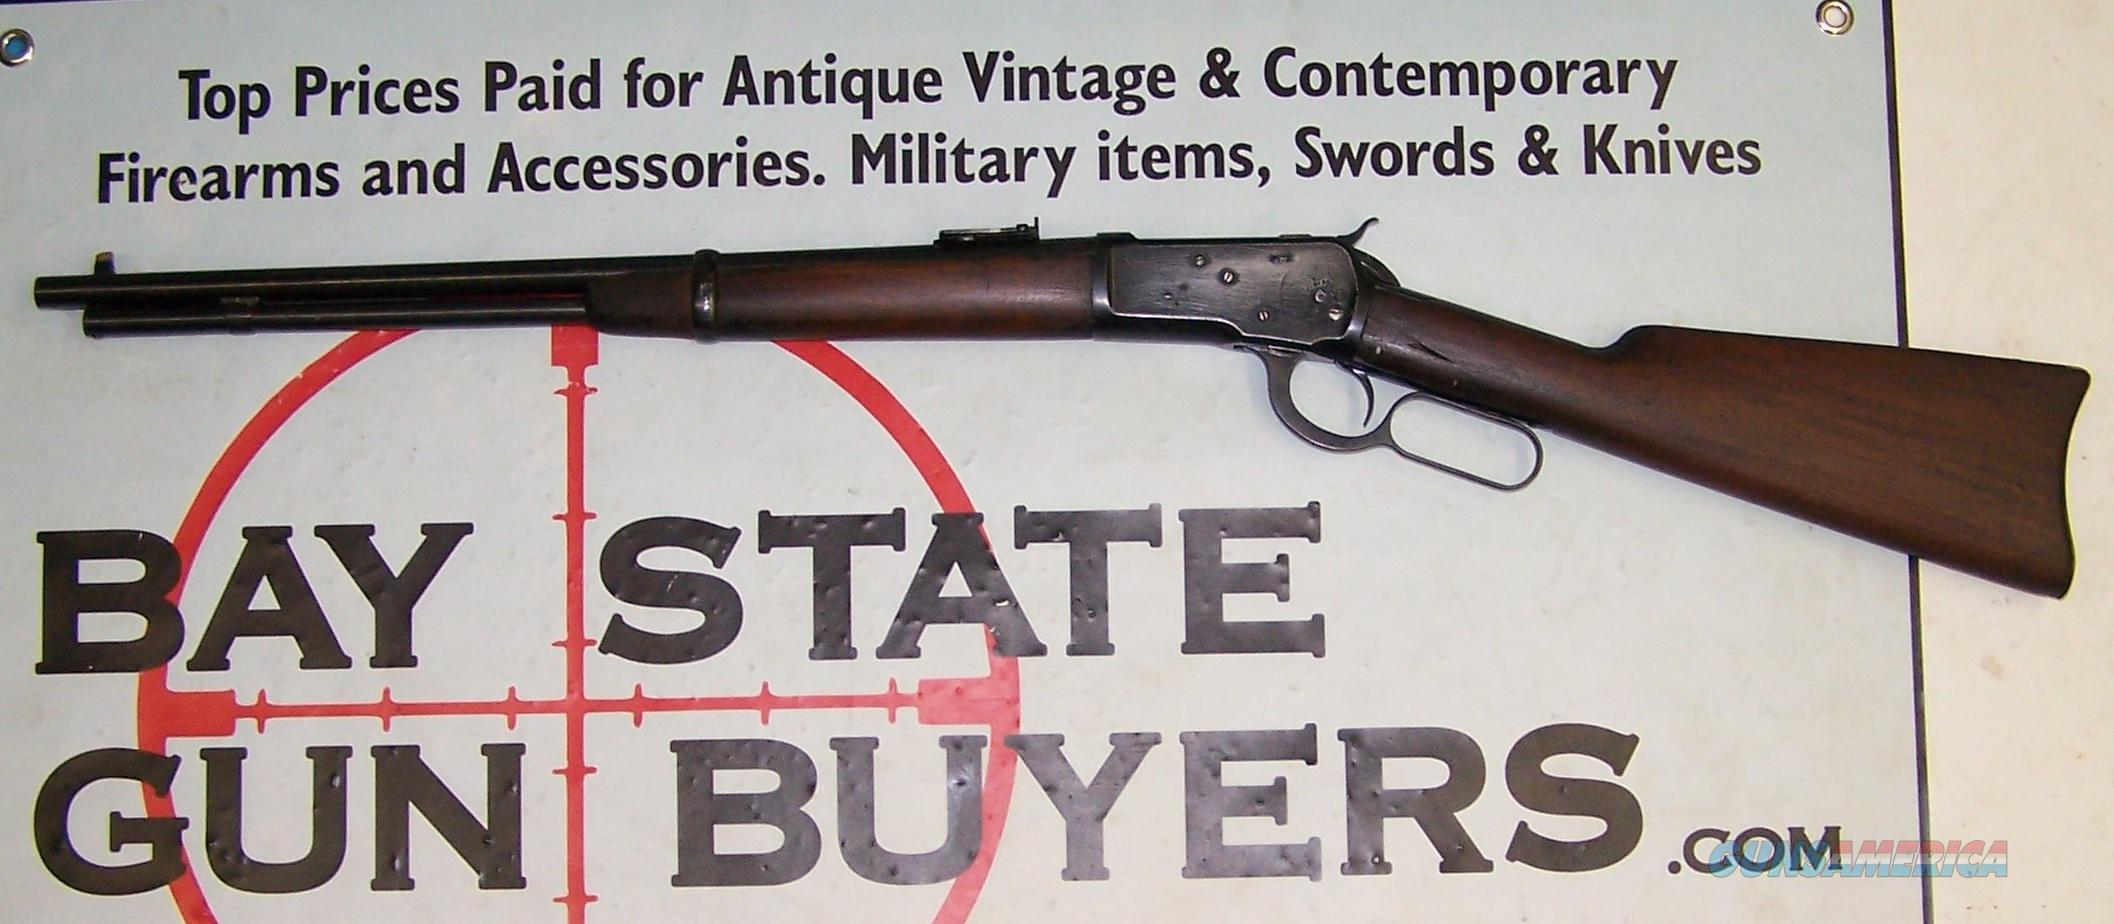 Winchester Model 1892 Lever Action Rifle 32 W.C.F. SADDLE RING CARBINE  Guns > Rifles > Winchester Rifles - Modern Lever > Other Lever > Pre-64